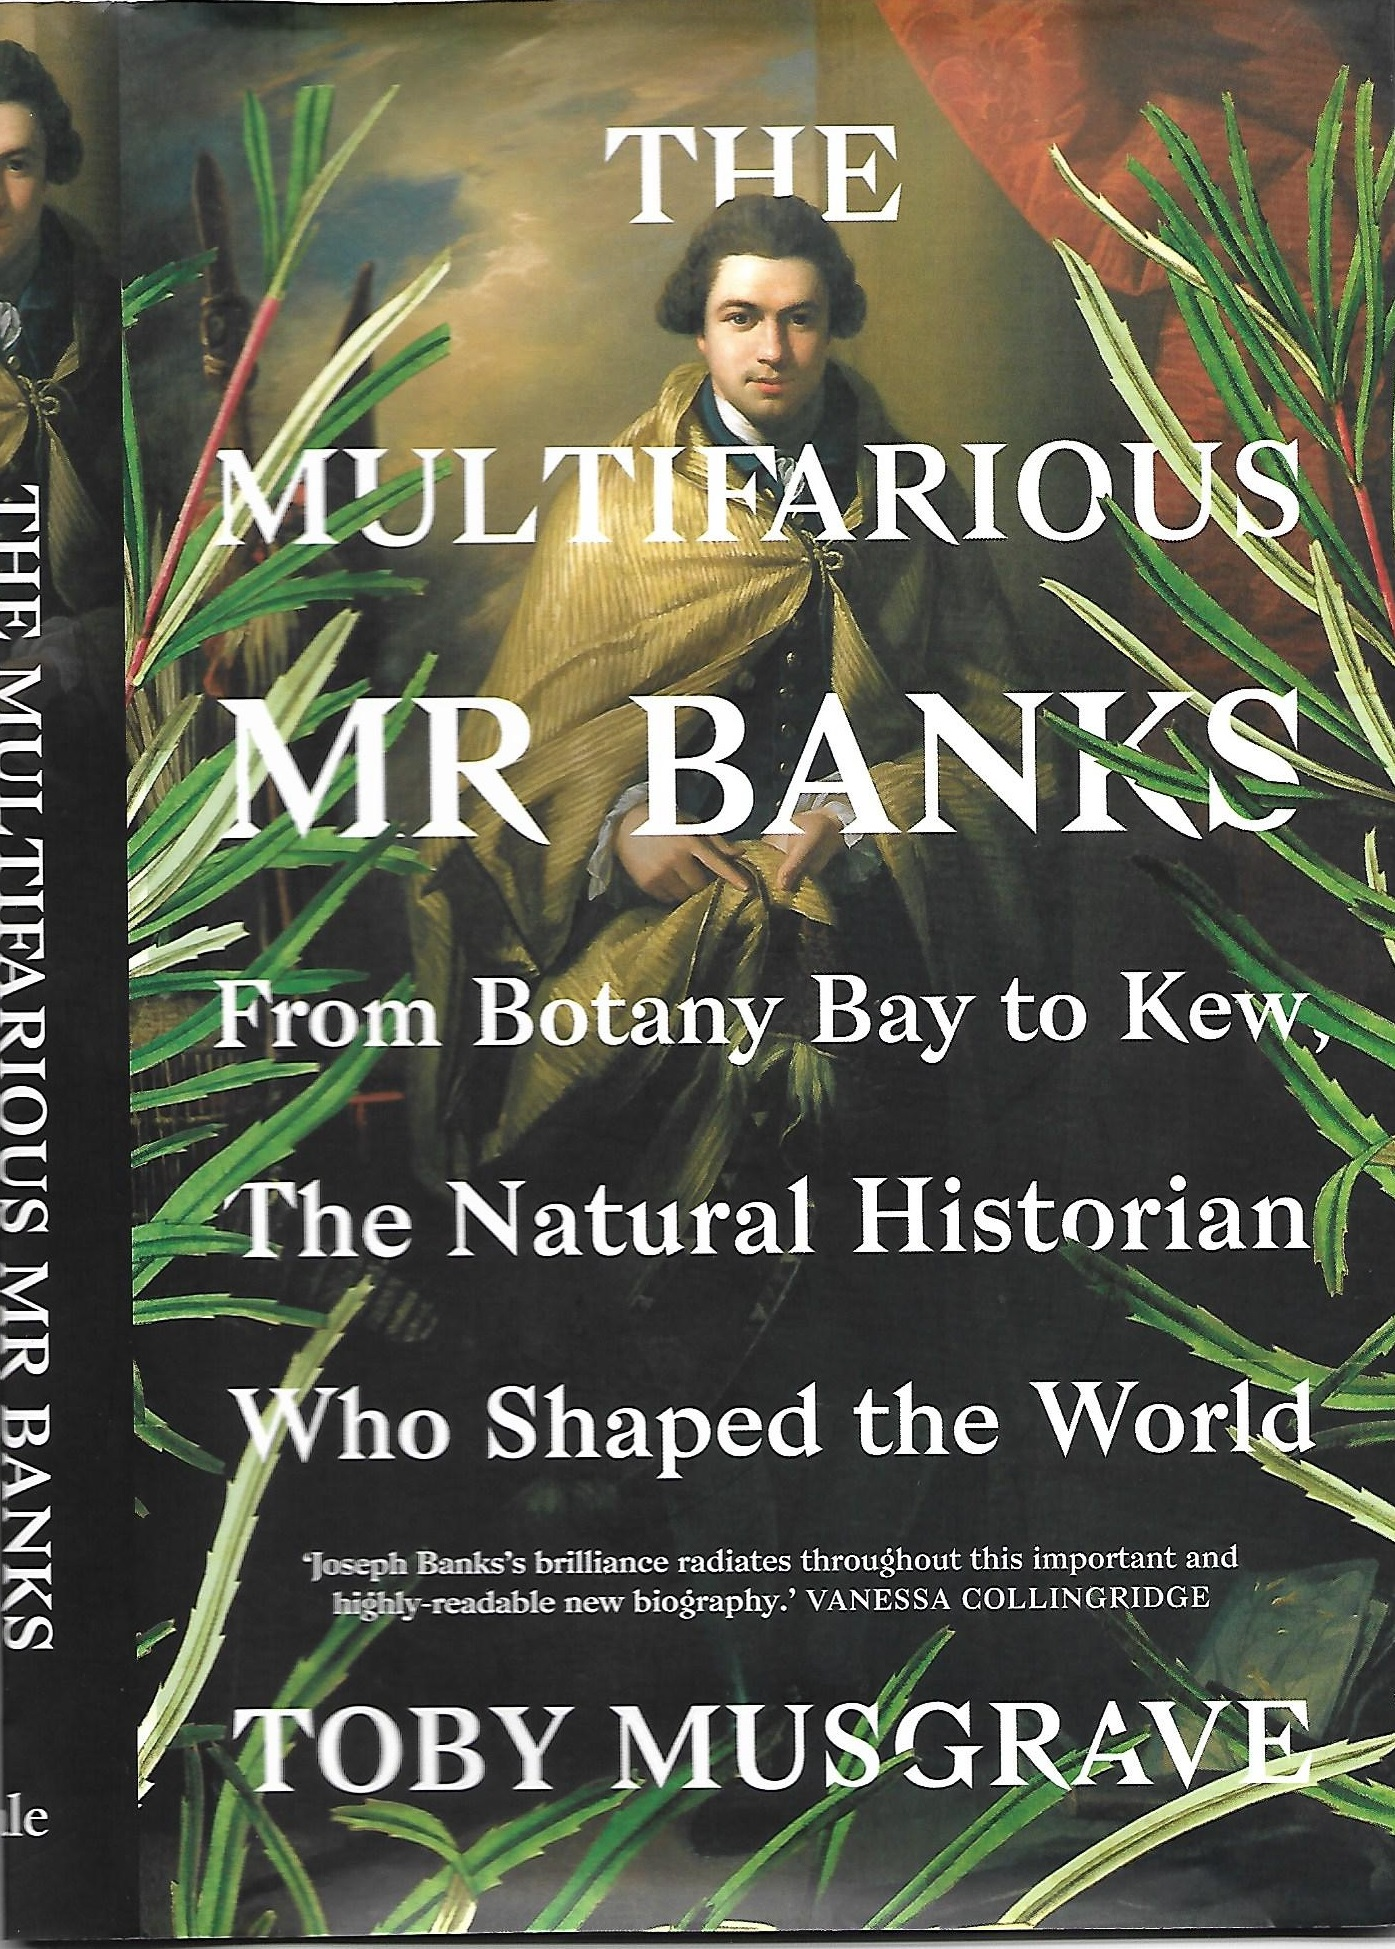 Image of the book cover of The Multifarious Mr Banks by Toby Musgrave